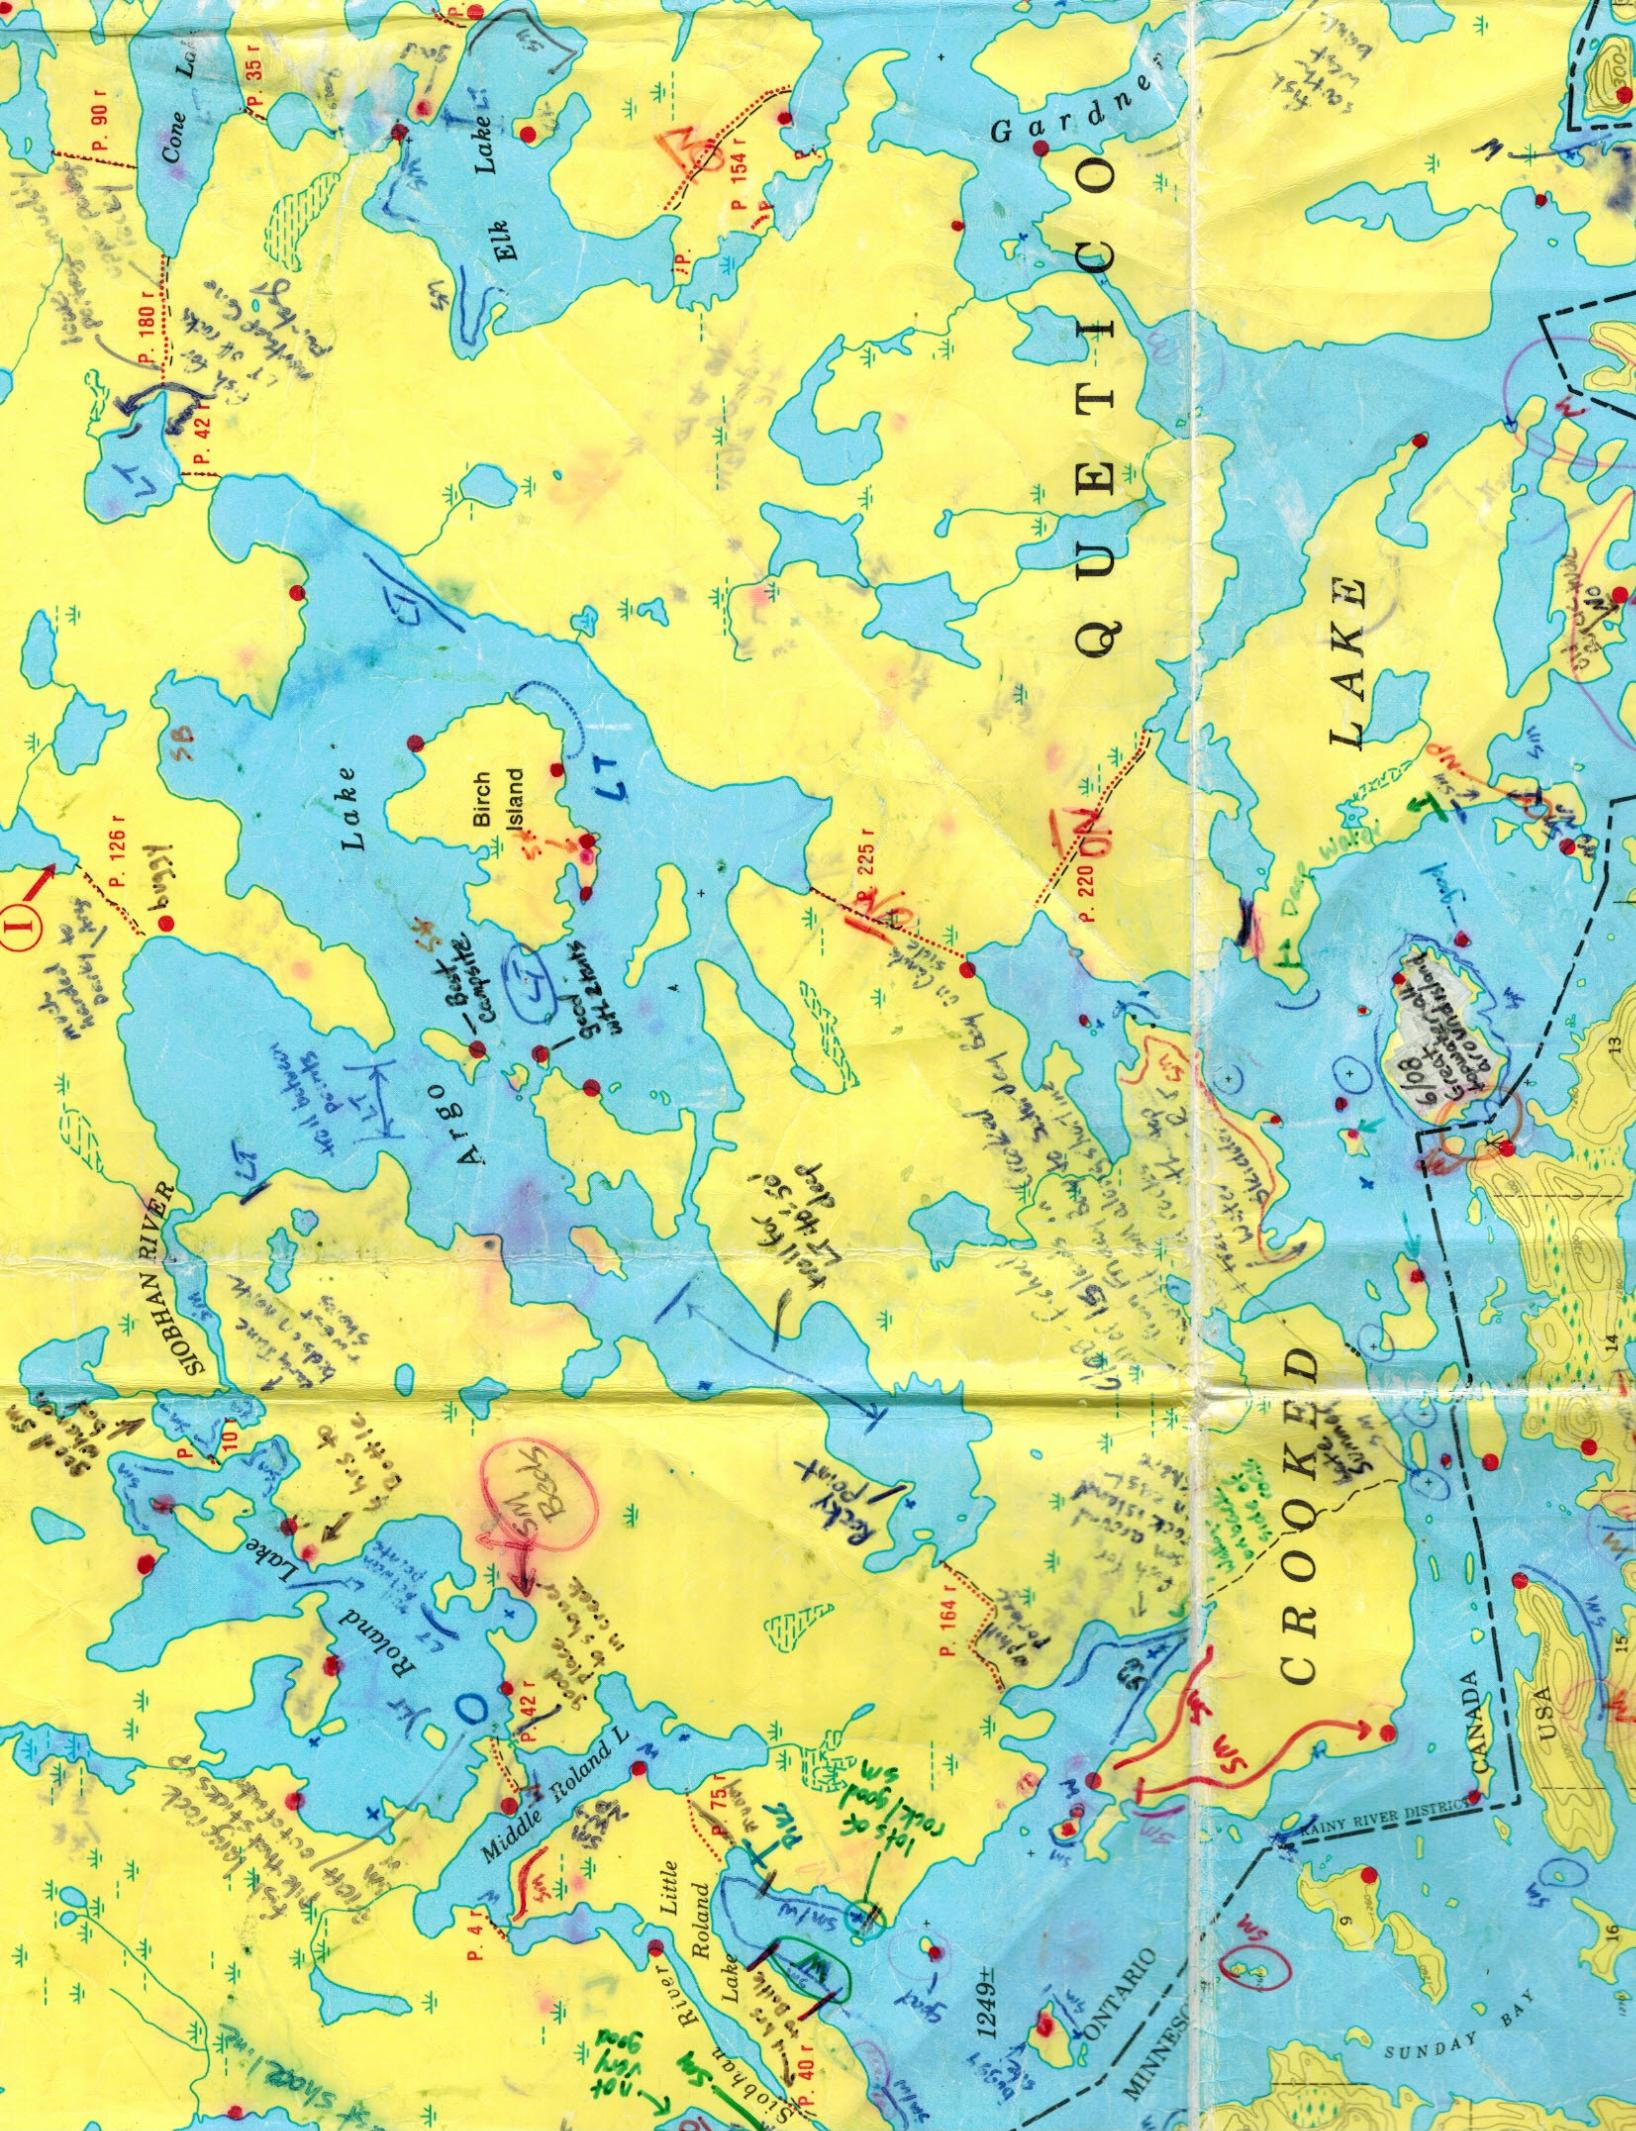 BWCA Argo lake camp sites and info Boundary Waters Quetico Forum Quetico Provincial Park Map on